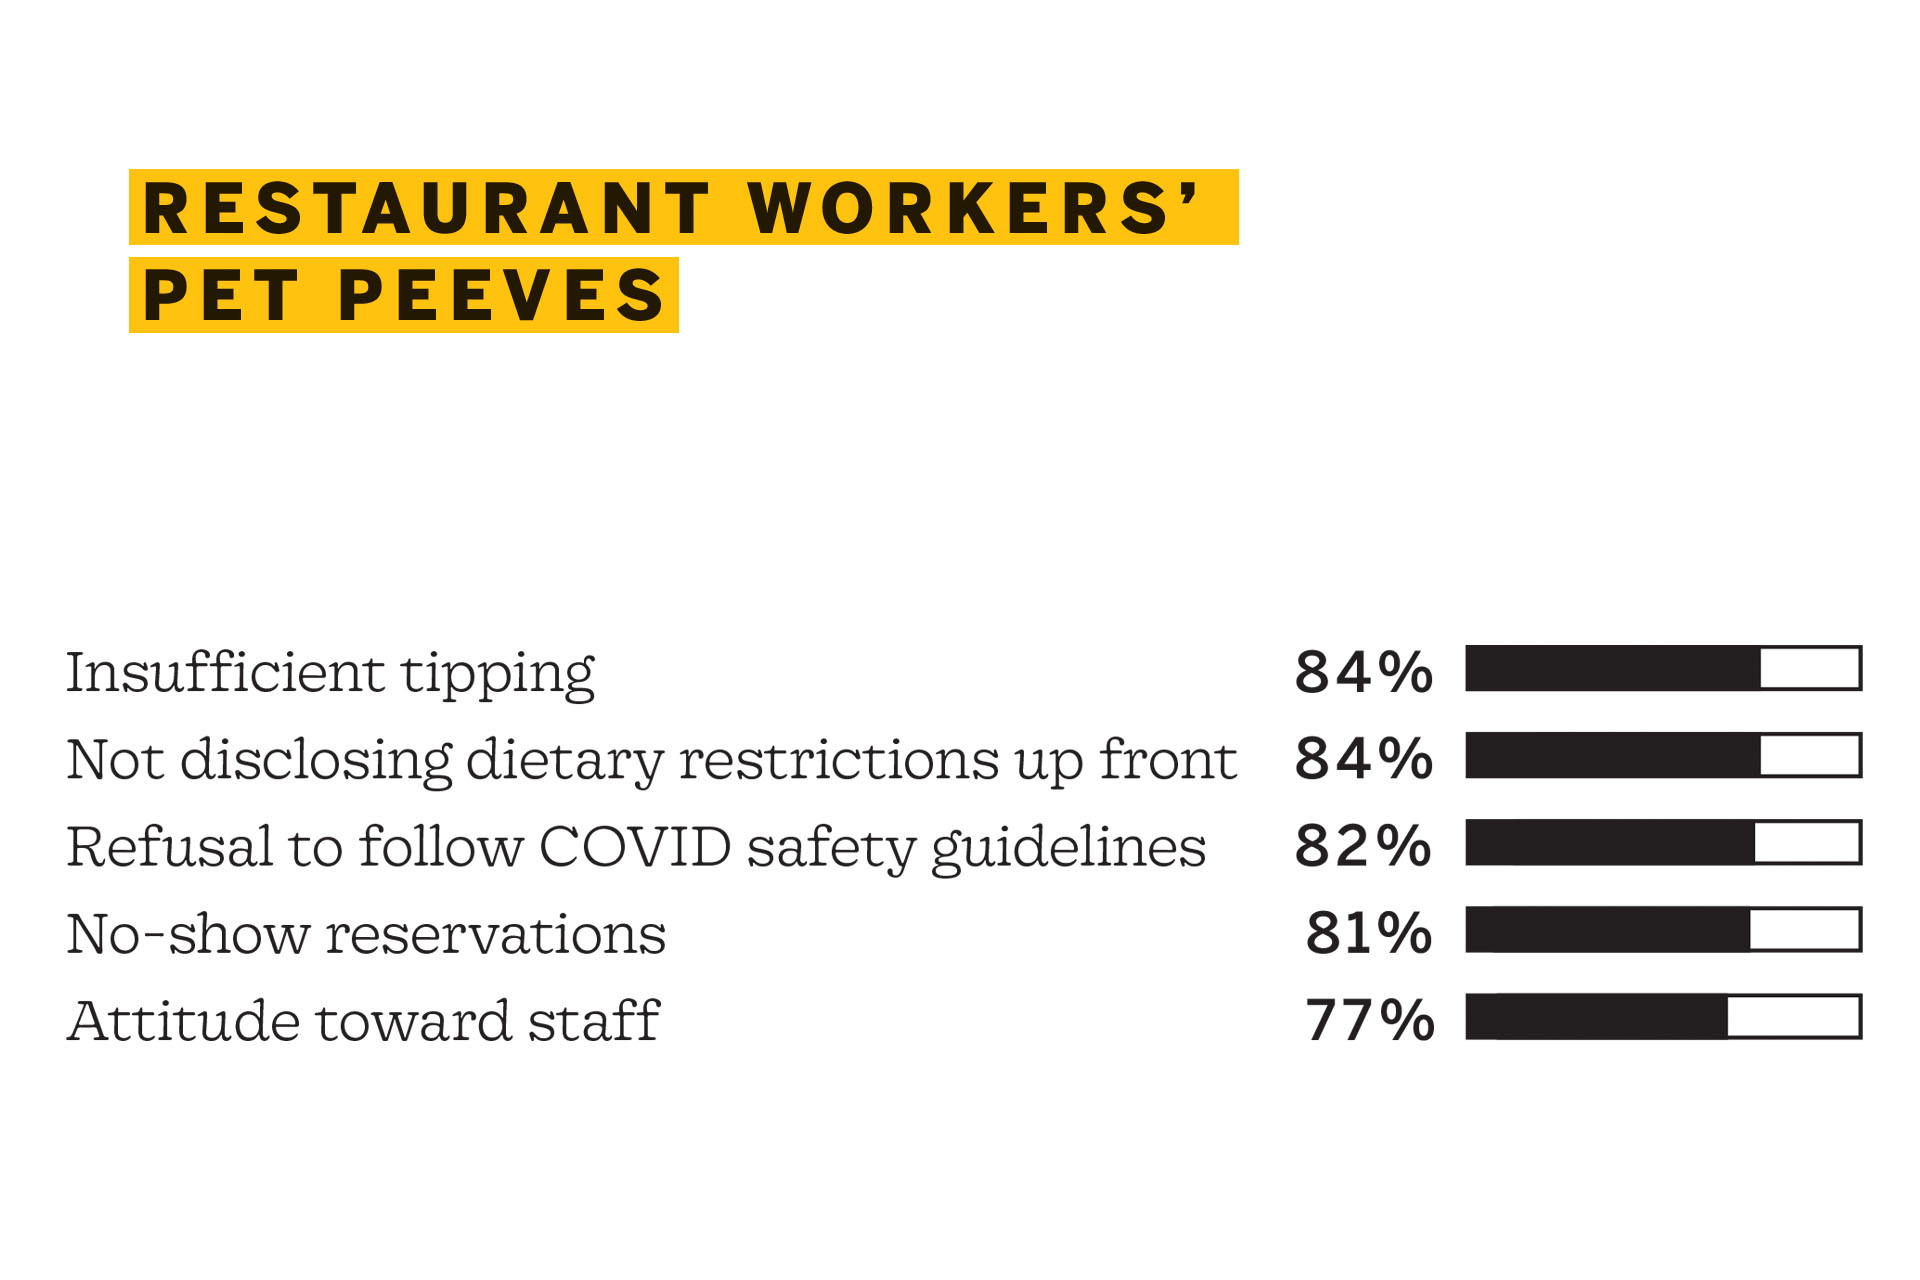 """Infographic titled """"Restaurant Workers' Pet Peeves"""" that shows a bar graph of 84% insufficient tipping, 84% not disclosing dietary restrictions up front, 82% refusal to follow COVID safety guidelines, 81% no-show reservations, and 77% attitude toward staff"""